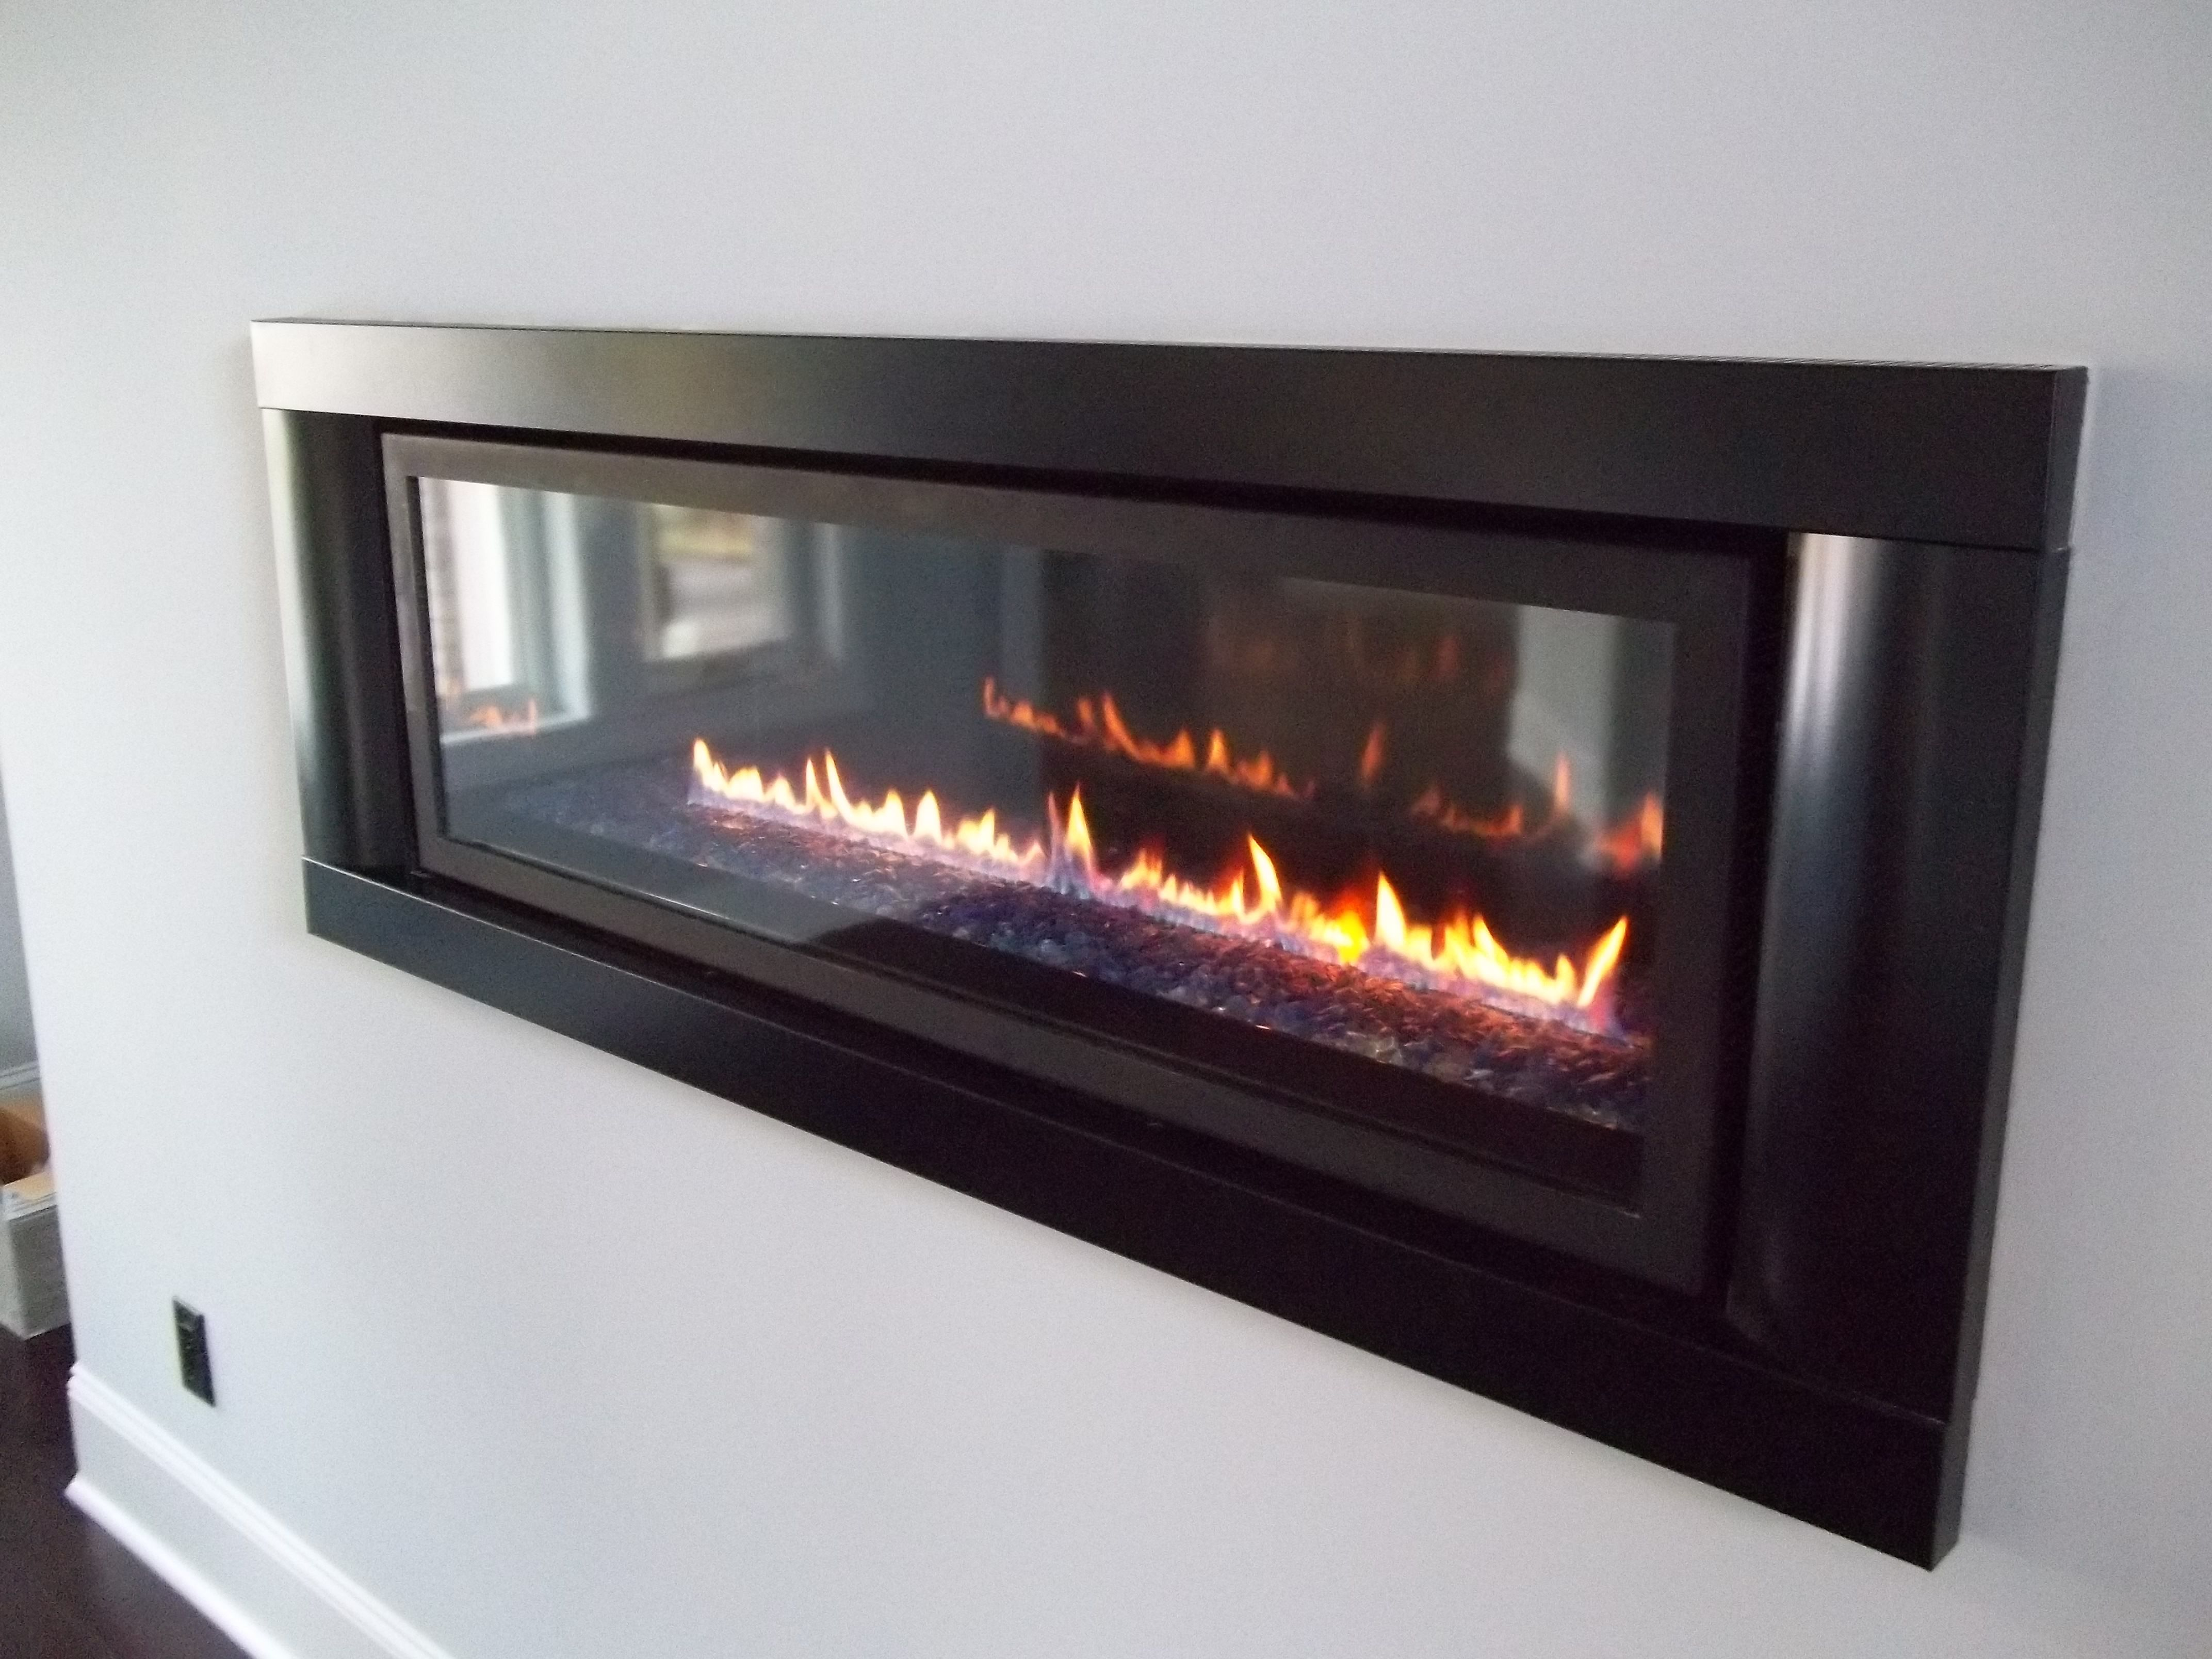 Napoleon Direct Vent Gas Fireplace Beautiful Napoleon Lhd45 In A Very Uncluttered Wall